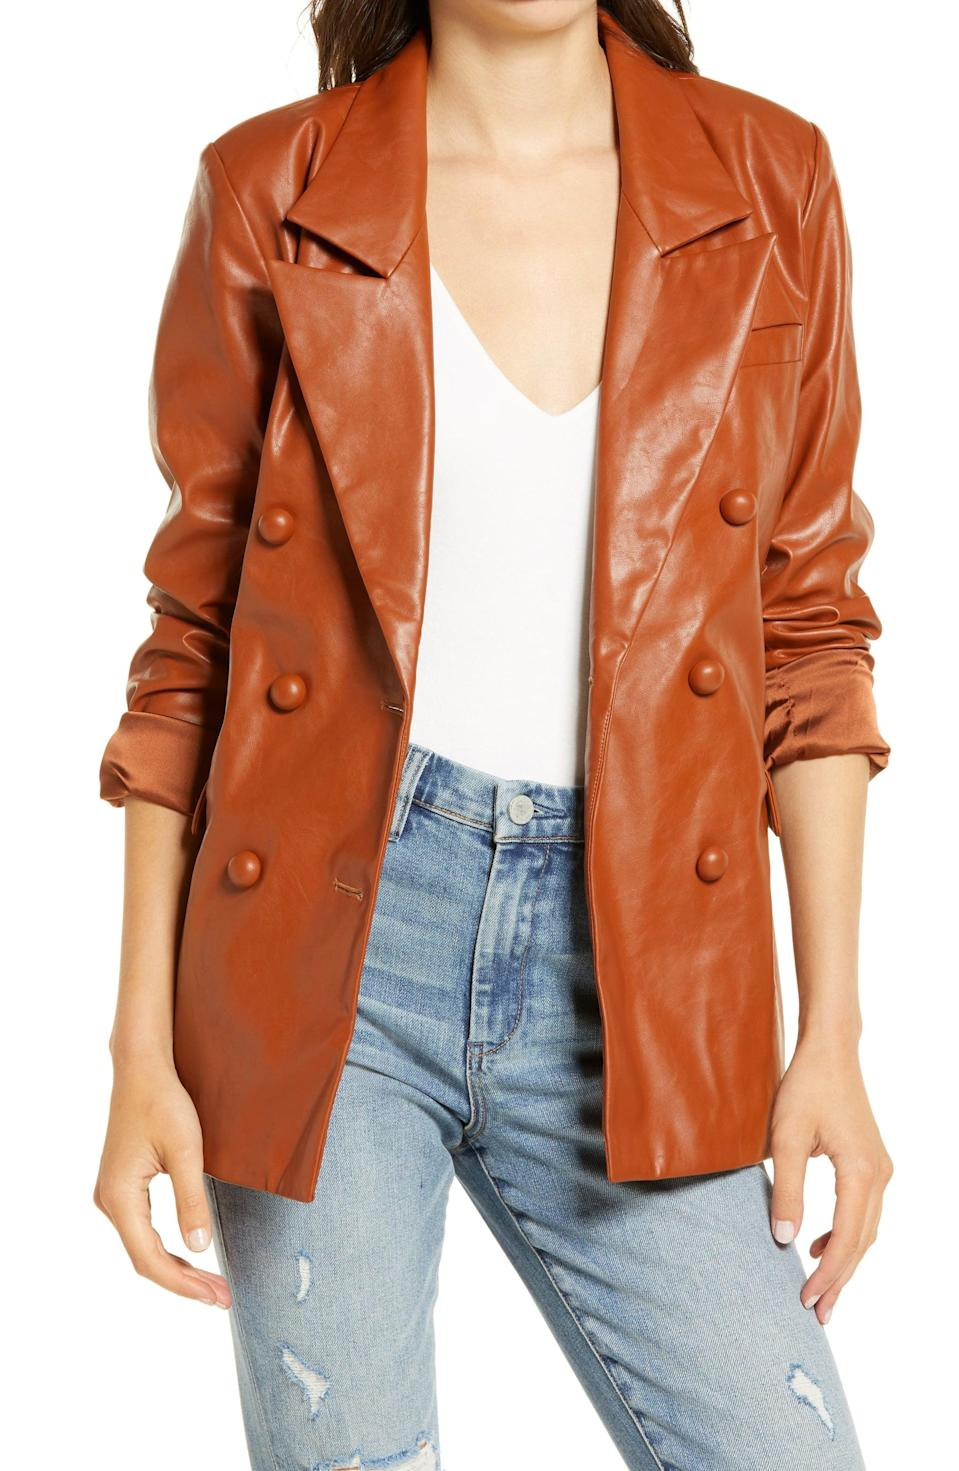 <p><span>BlankNYC The Nightingale Faux Leather Blazer</span> ($50, originally $98)</p>